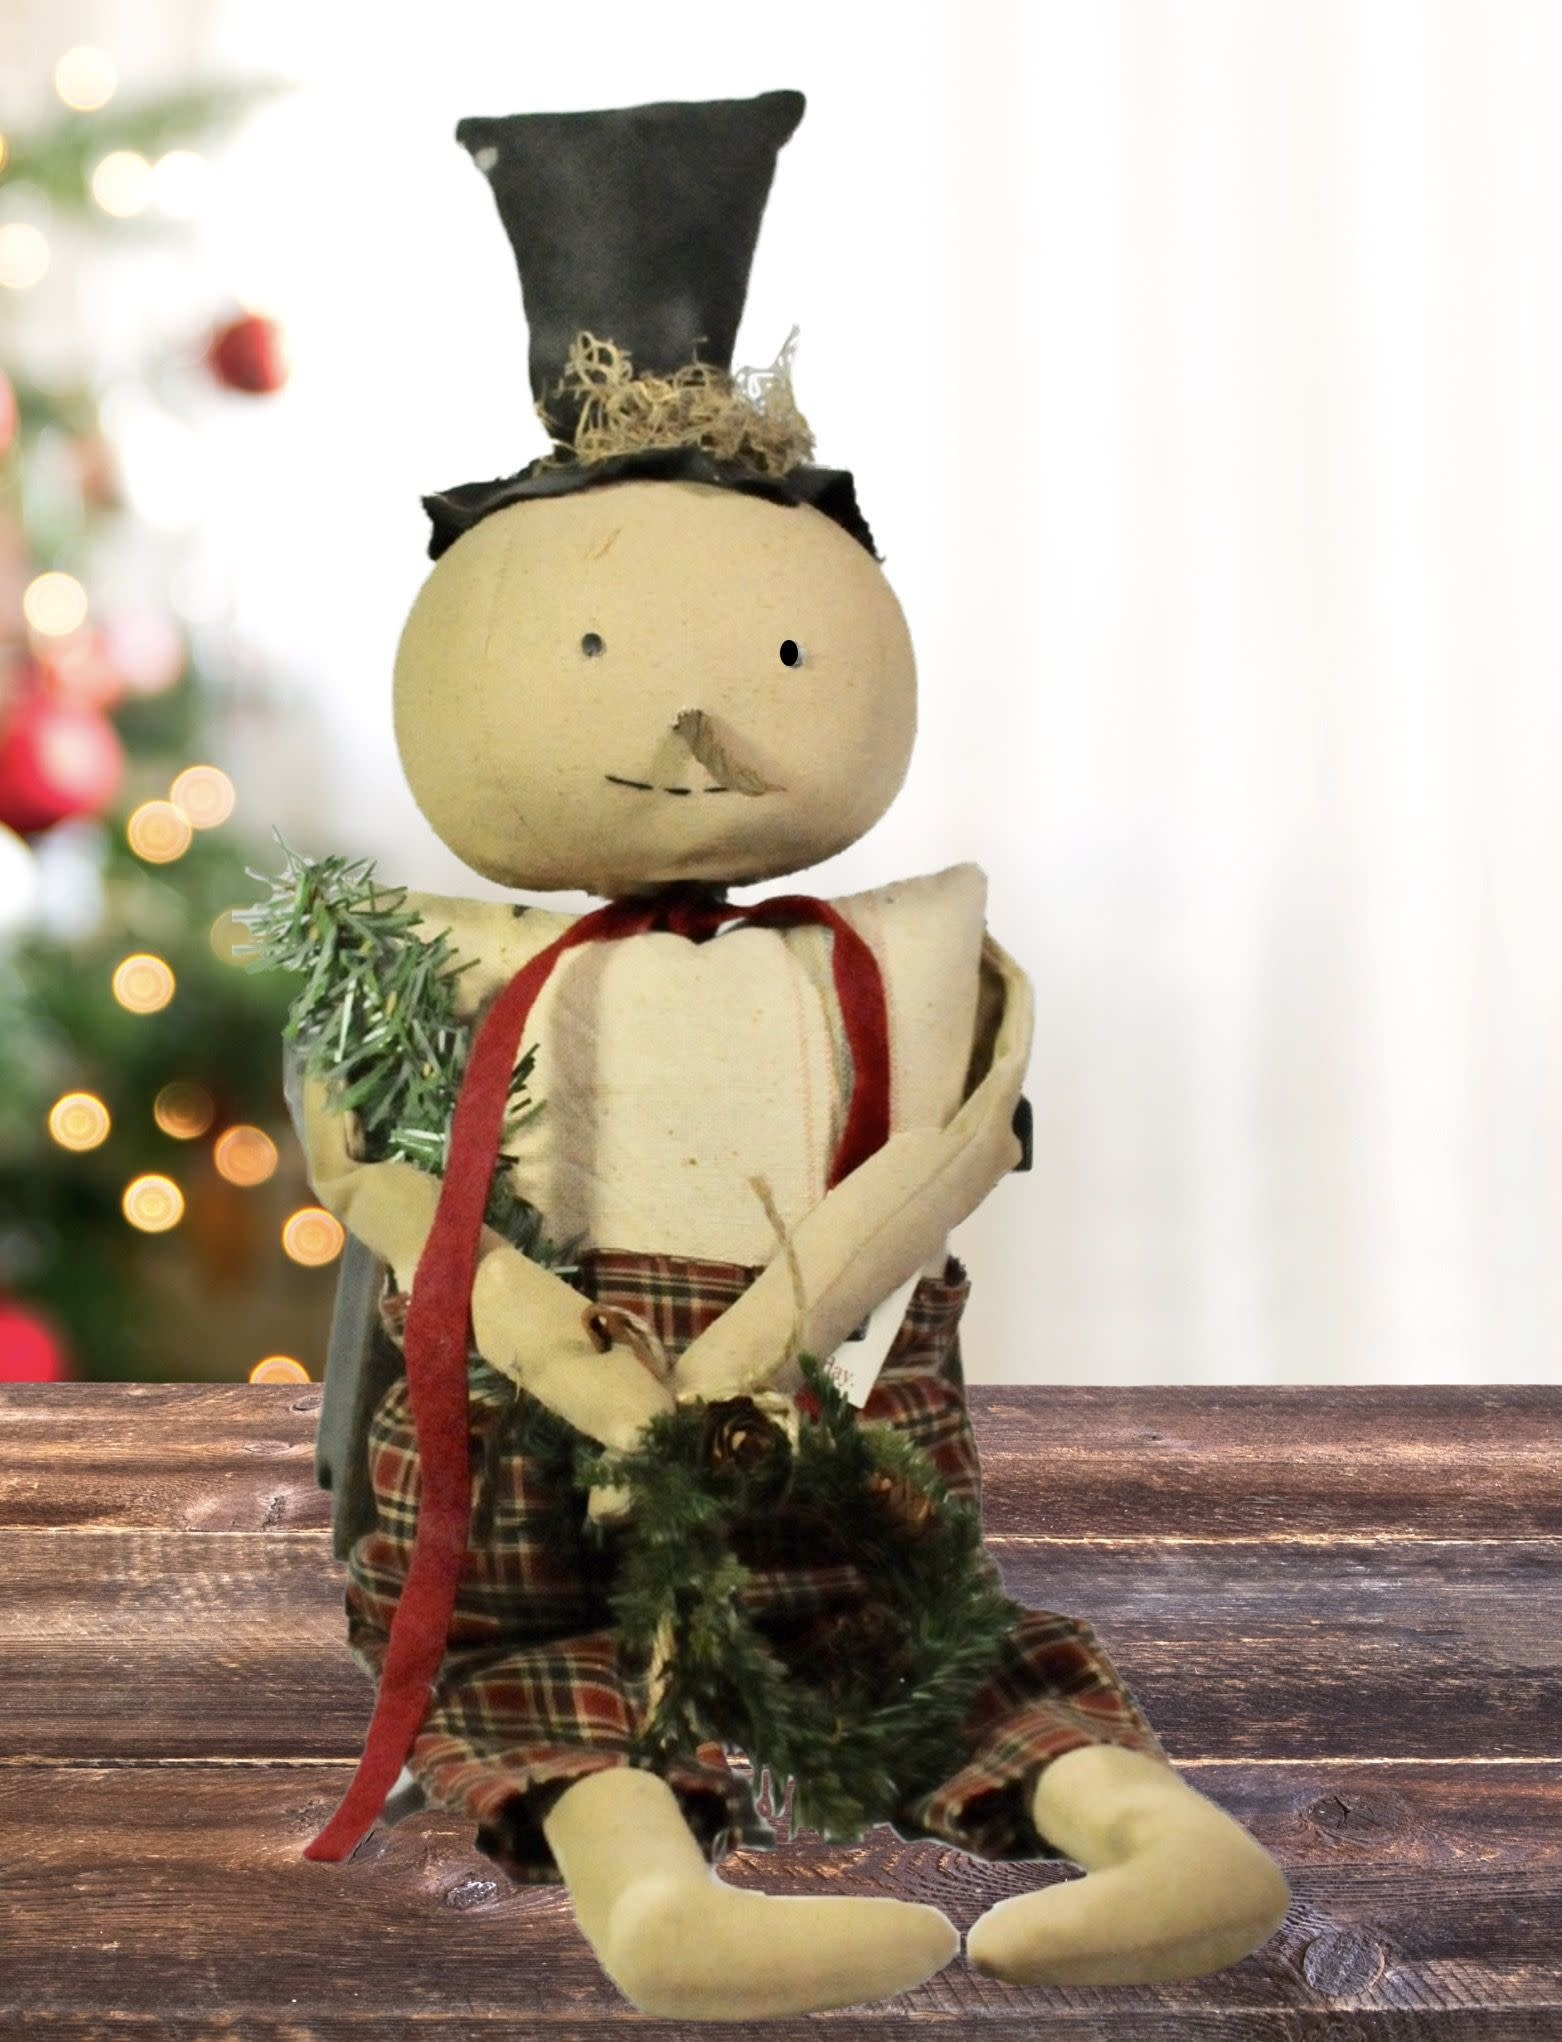 Dawns Attic Treasurers Sitting Snowman With Plaid Pants